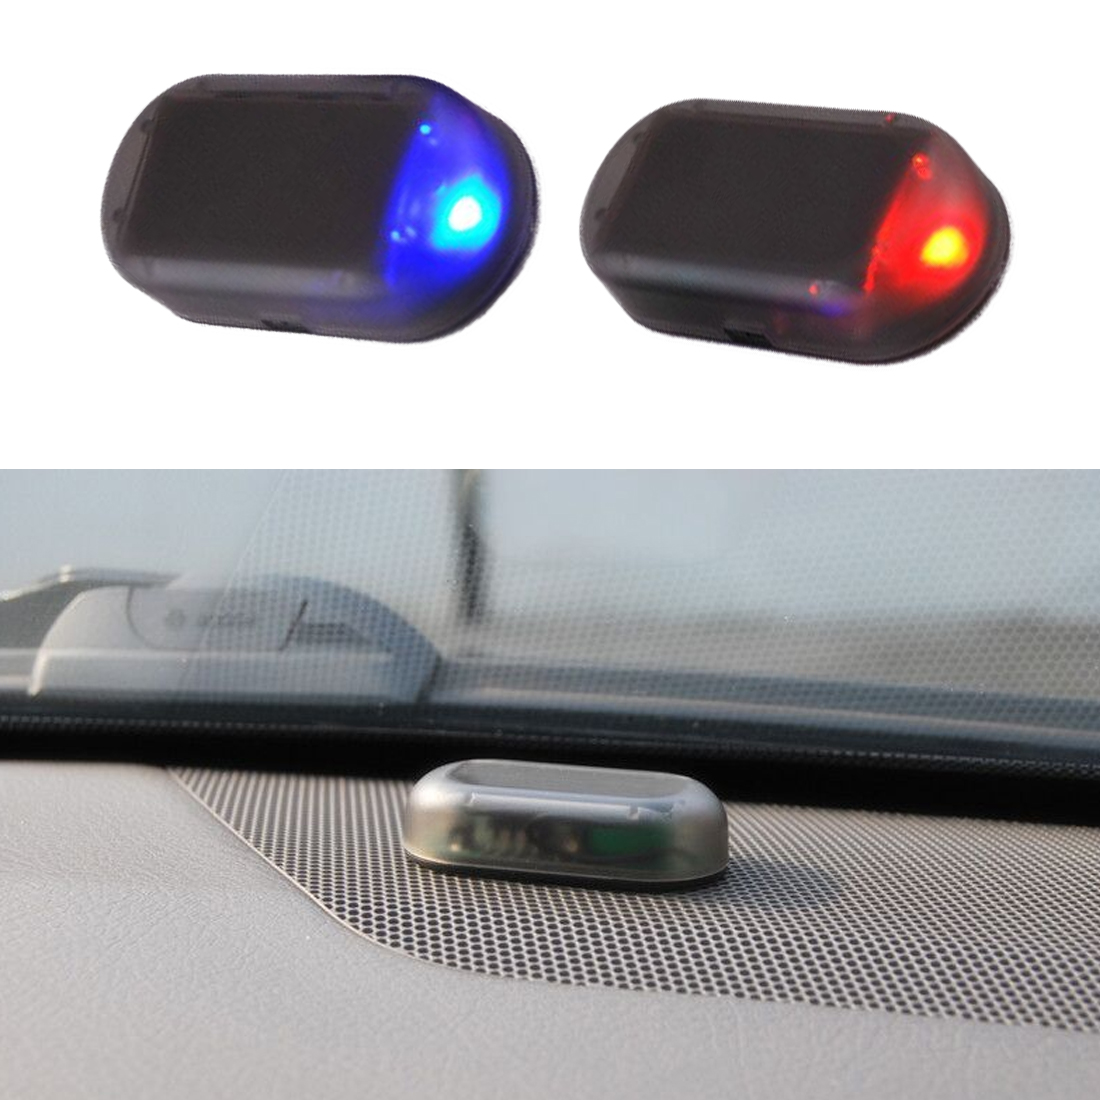 1PCS Universal Car Simulation Alarm Led Light Security Fake Solar System Warning Theft Flash Blinking Car